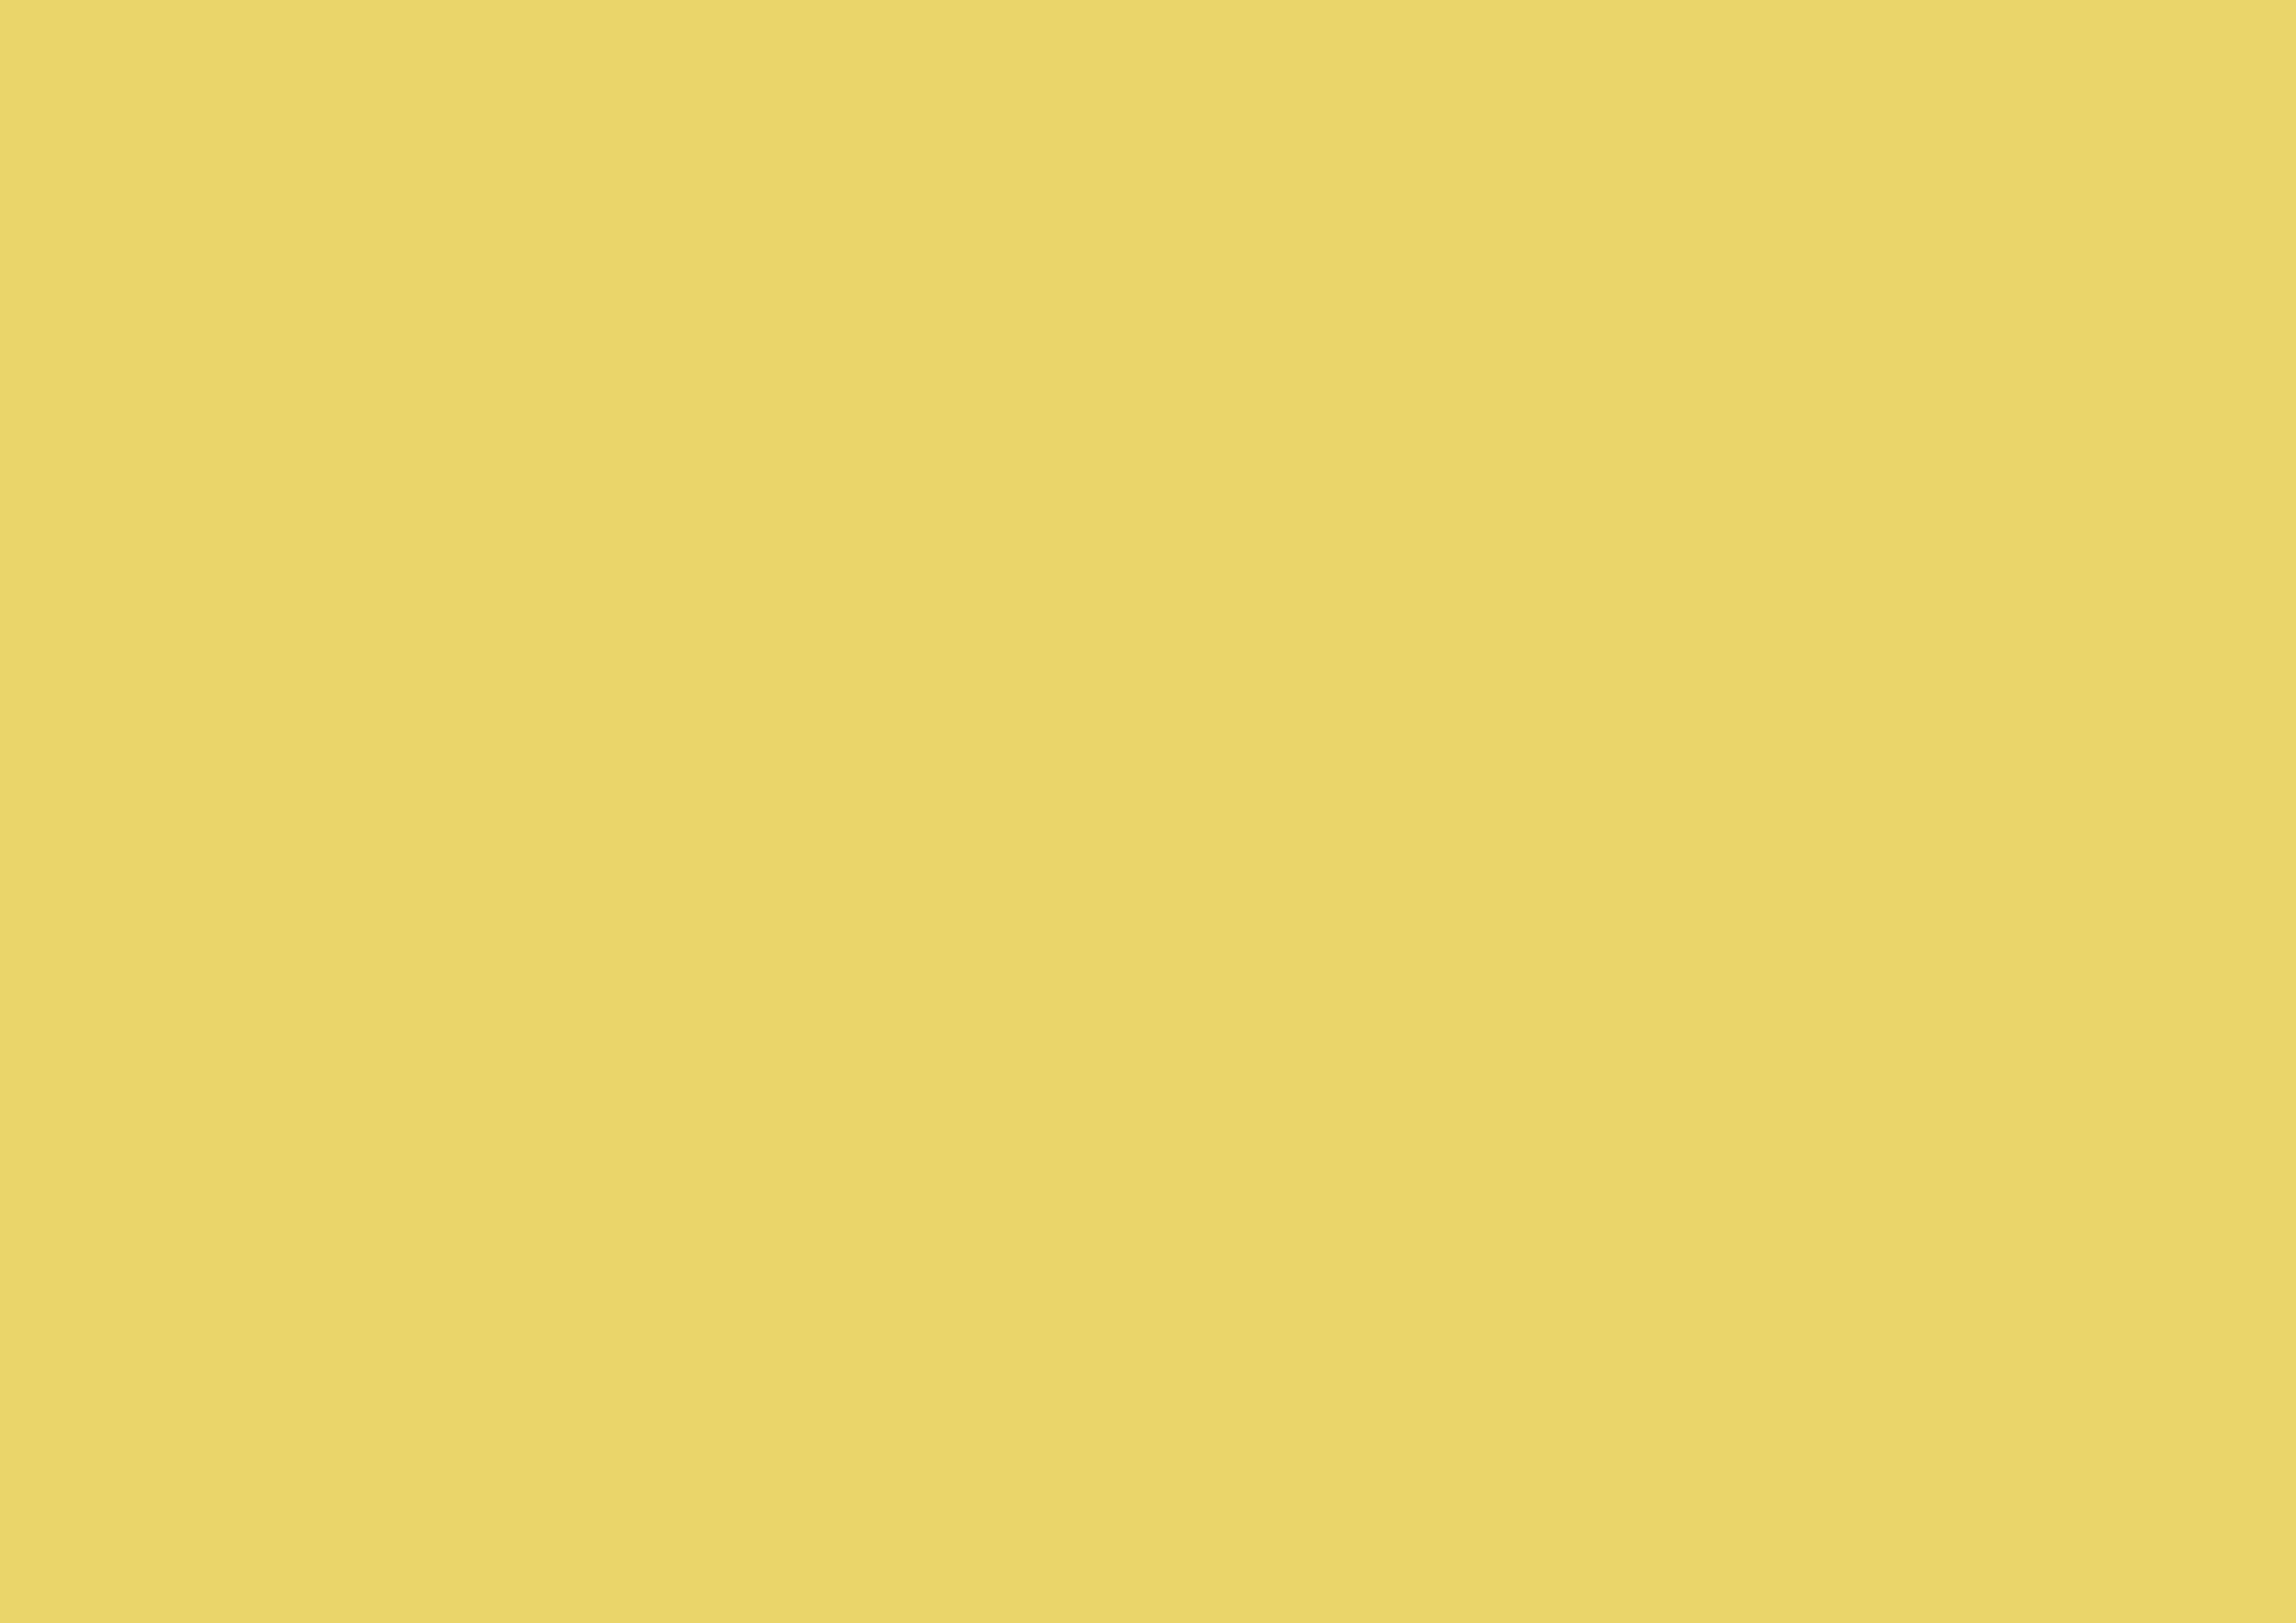 3508x2480 Arylide Yellow Solid Color Background